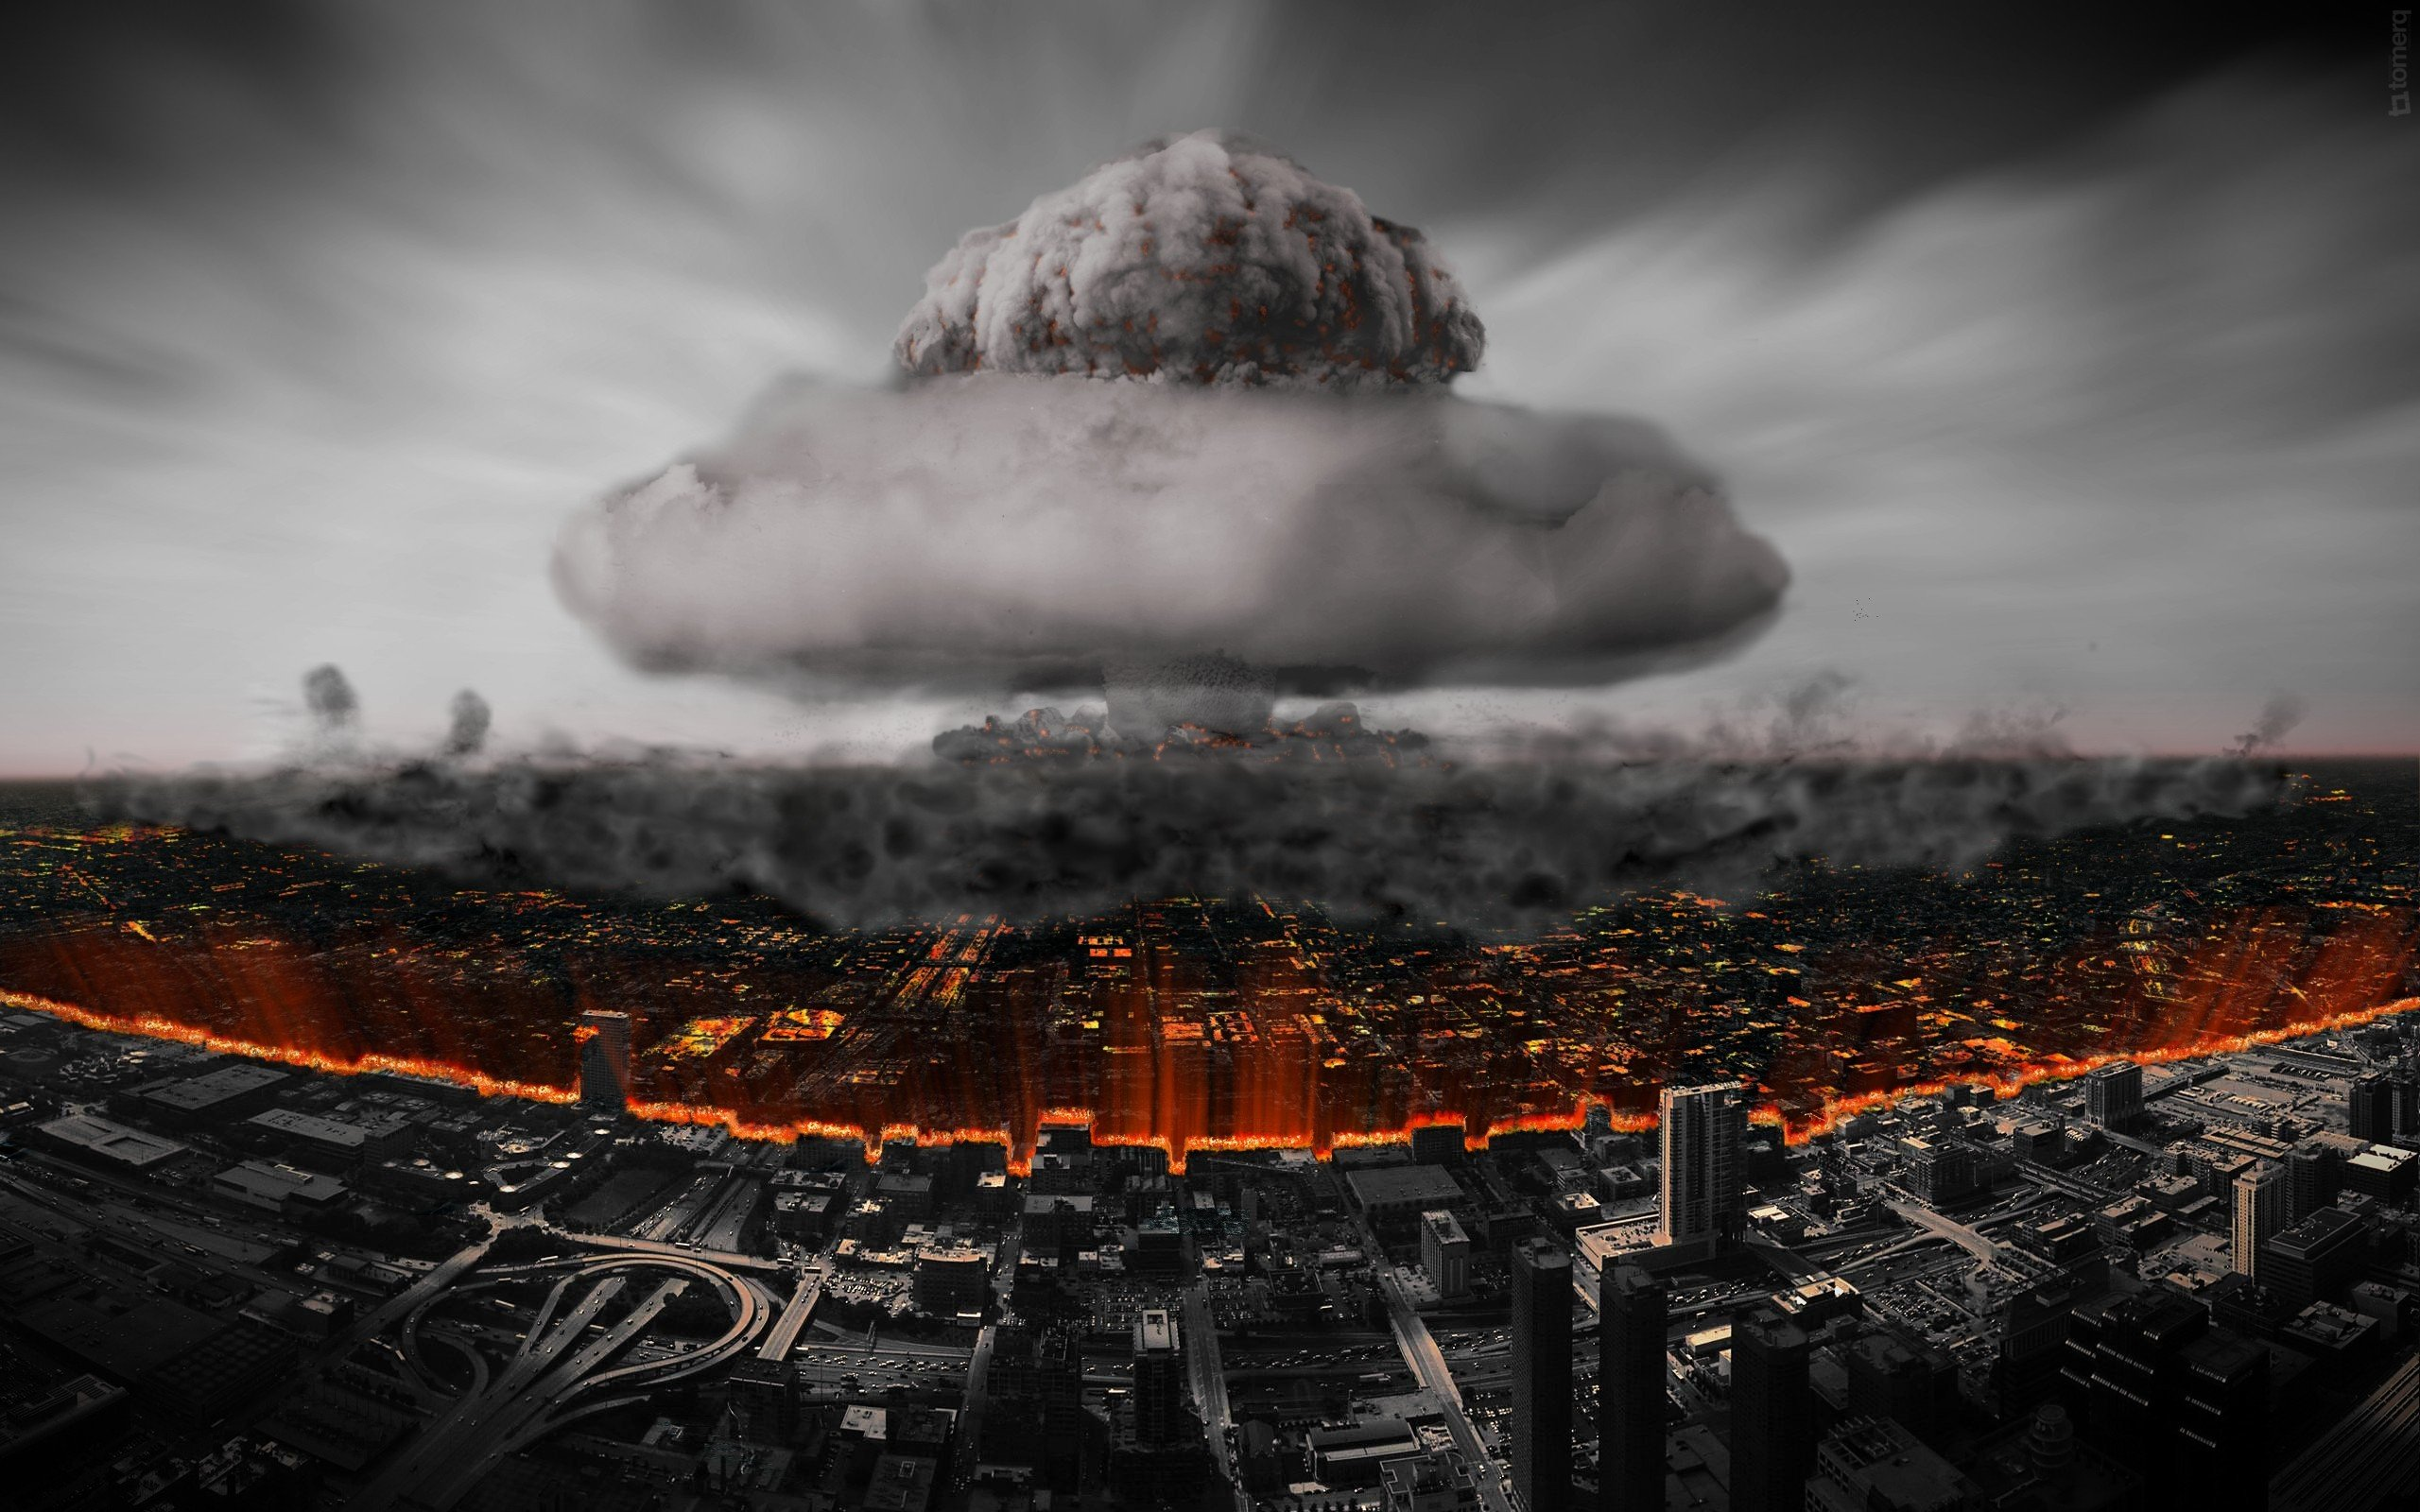 apocalyptic, Nuclear Wallpaper